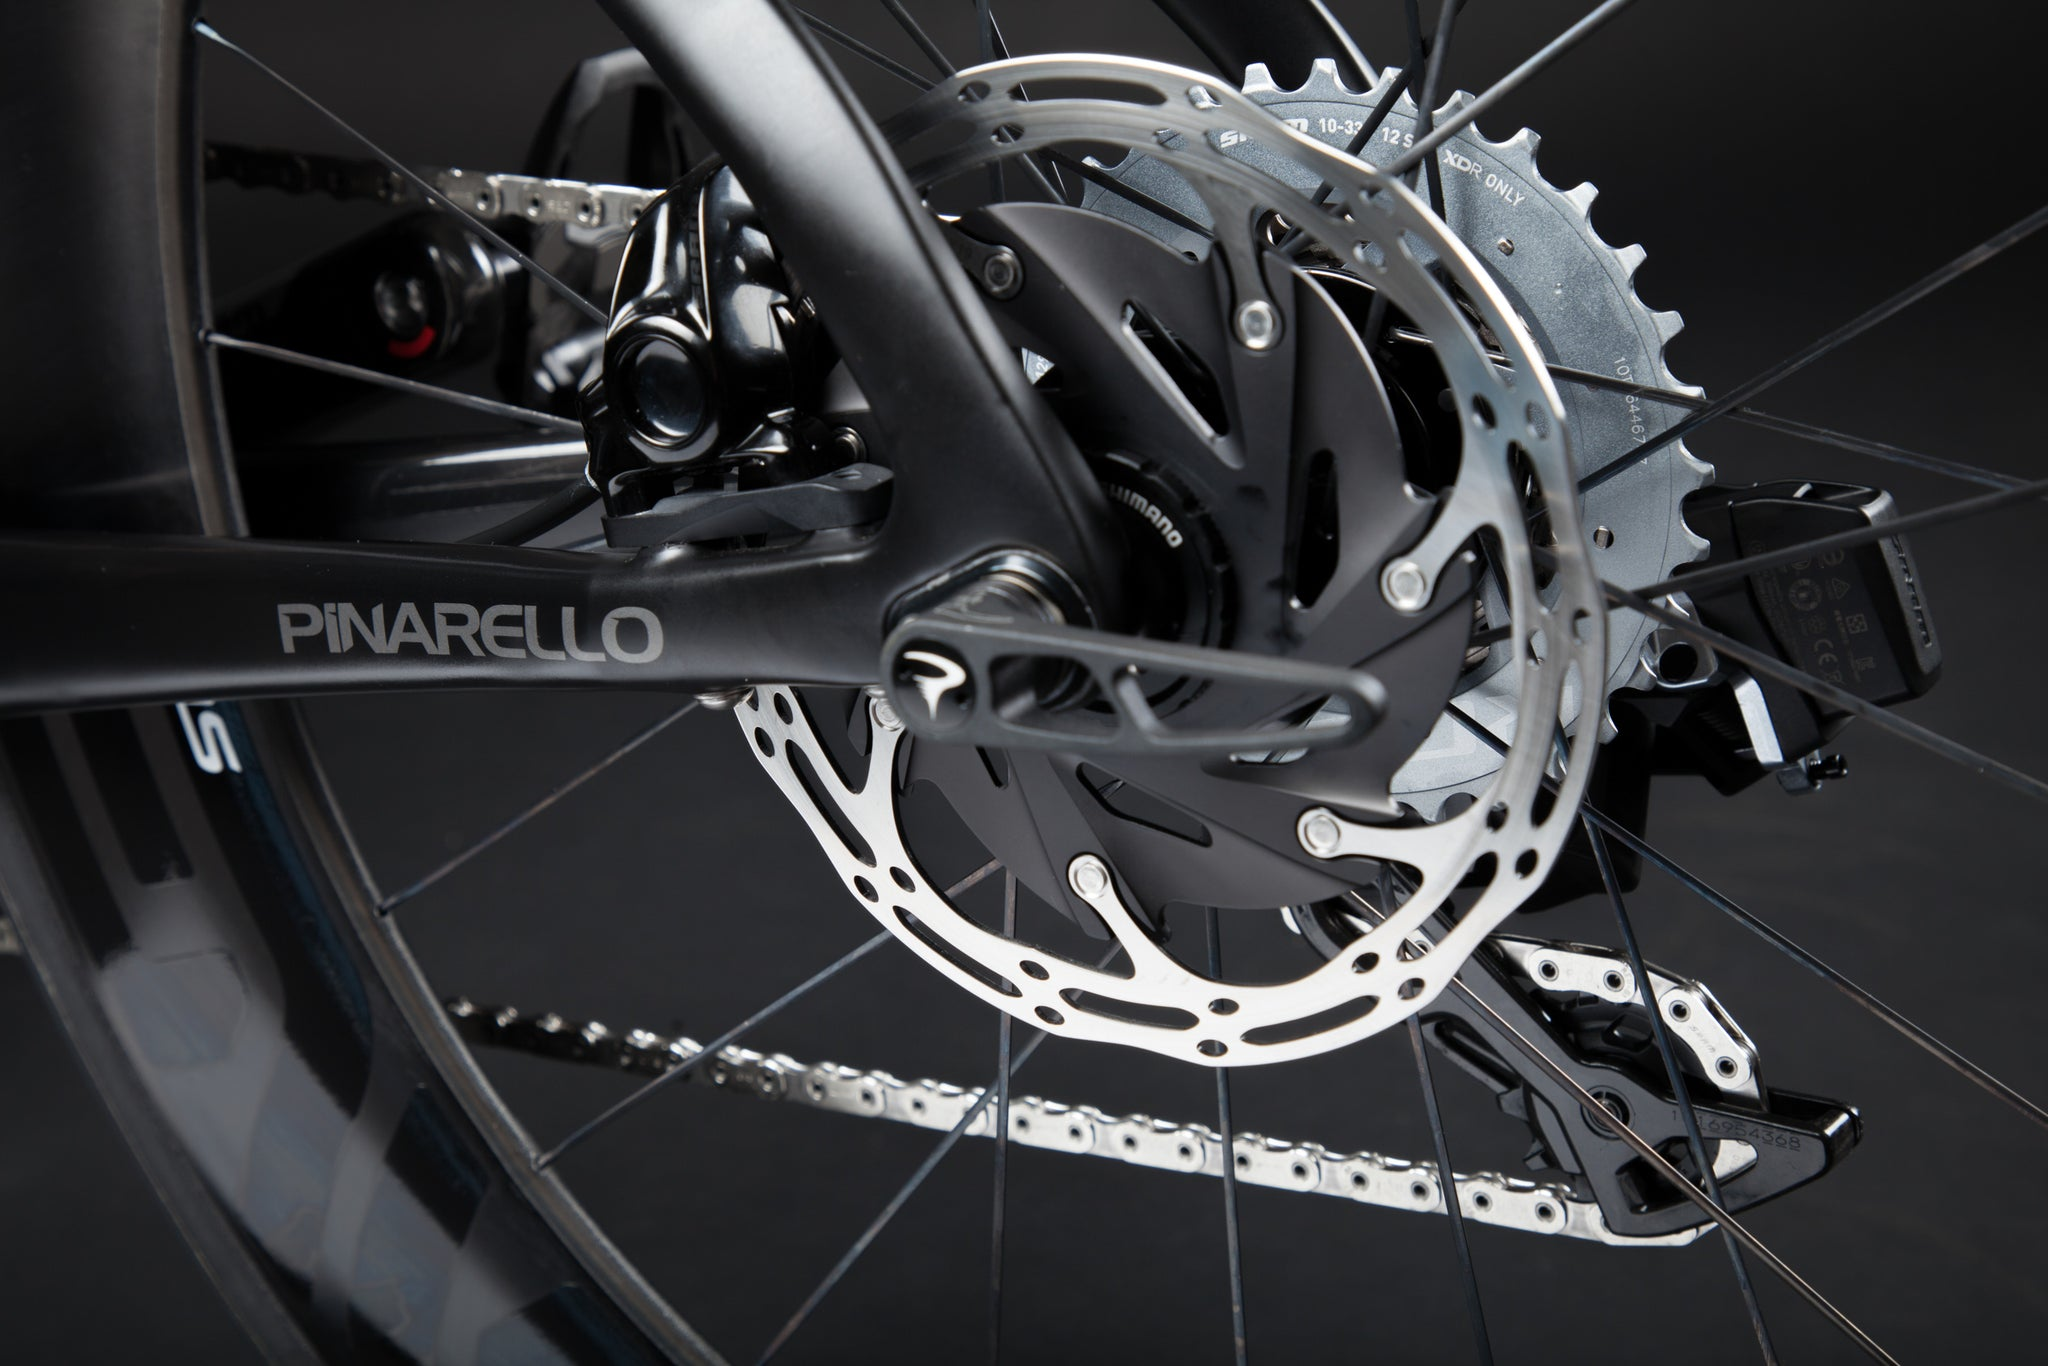 A Blacked Out Pinarello Bolide Gallery rear dropout rotor